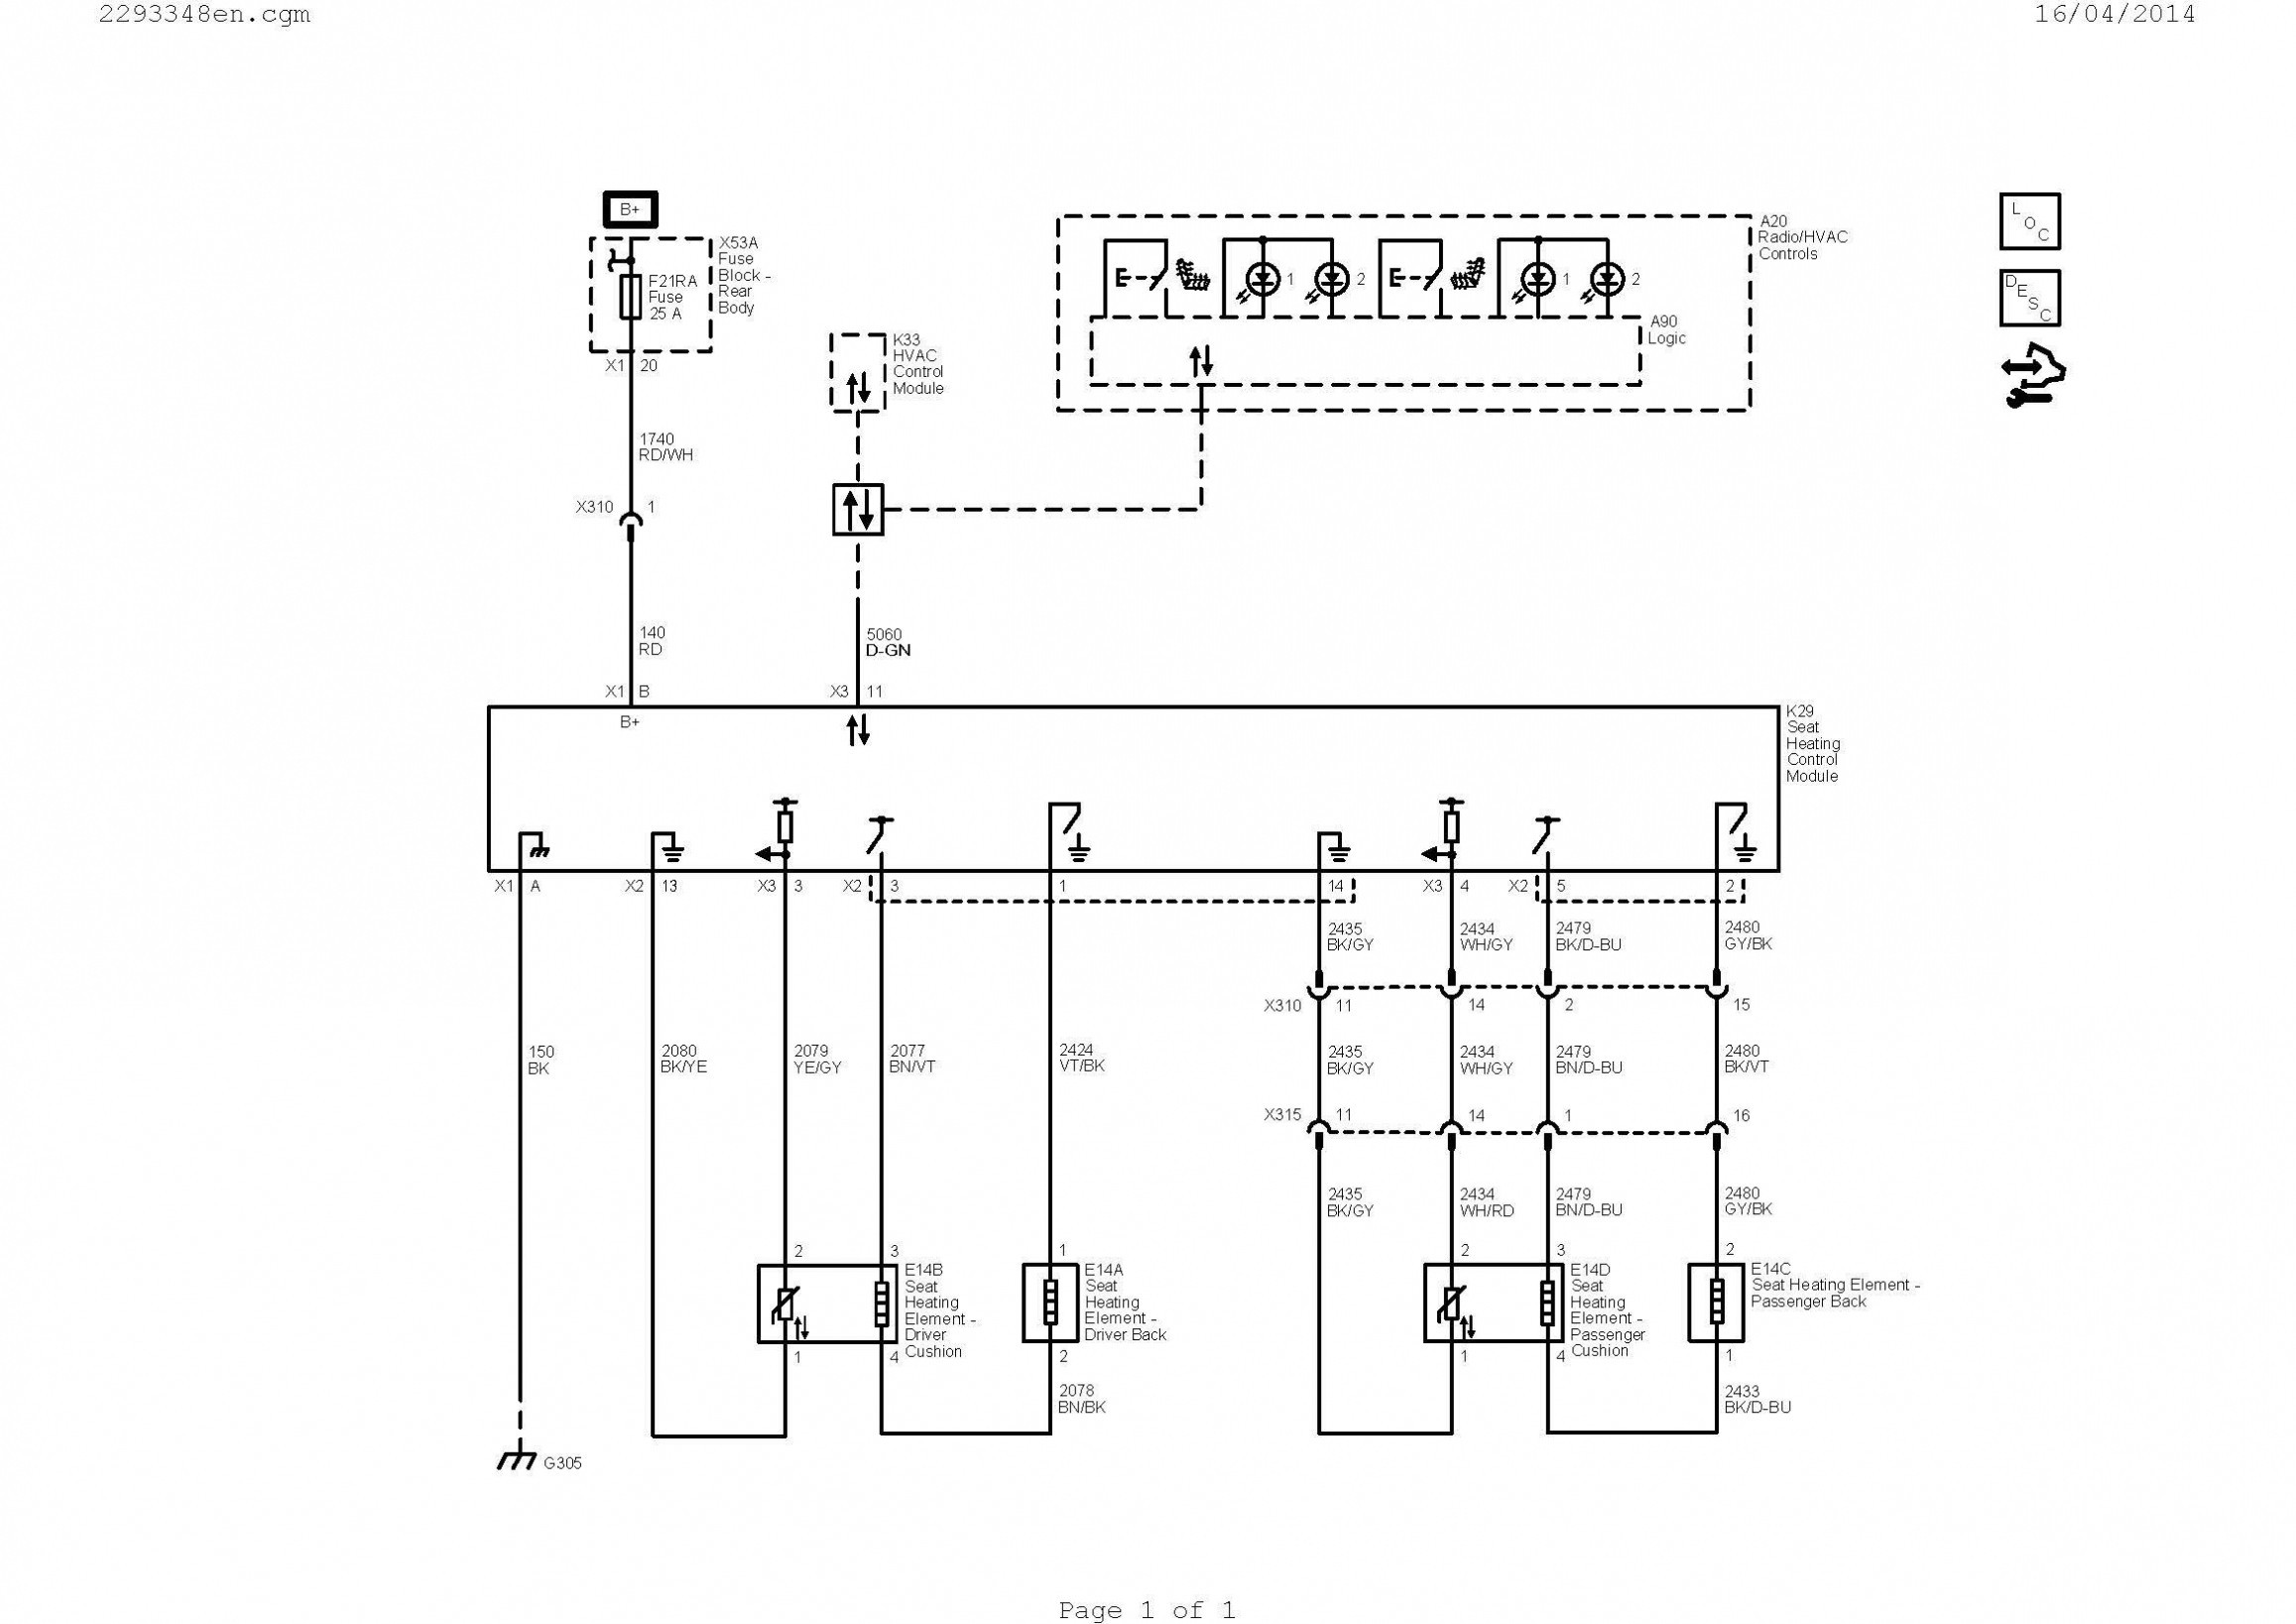 Led Tail Light Wiring Diagram F Road Lights Wiring Diagram for Anzo Electrical Wiring Diagrams Of Led Tail Light Wiring Diagram